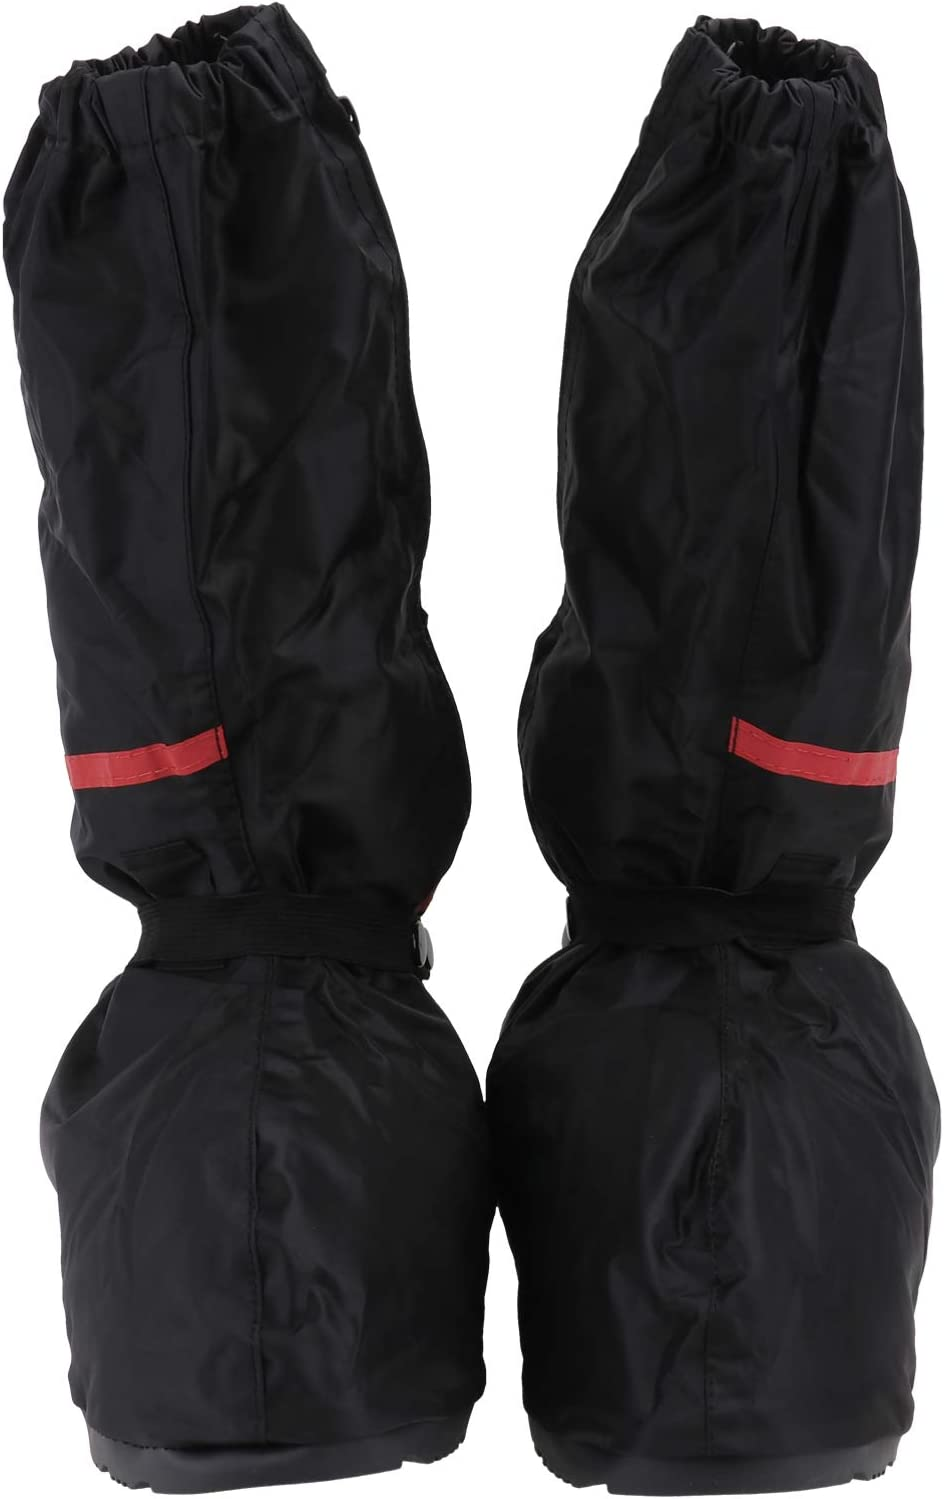 Holibanna 1 Pair Waterproof Shoe Cover Cloth Boots Rain Lowest price challenge O Oxford Classic